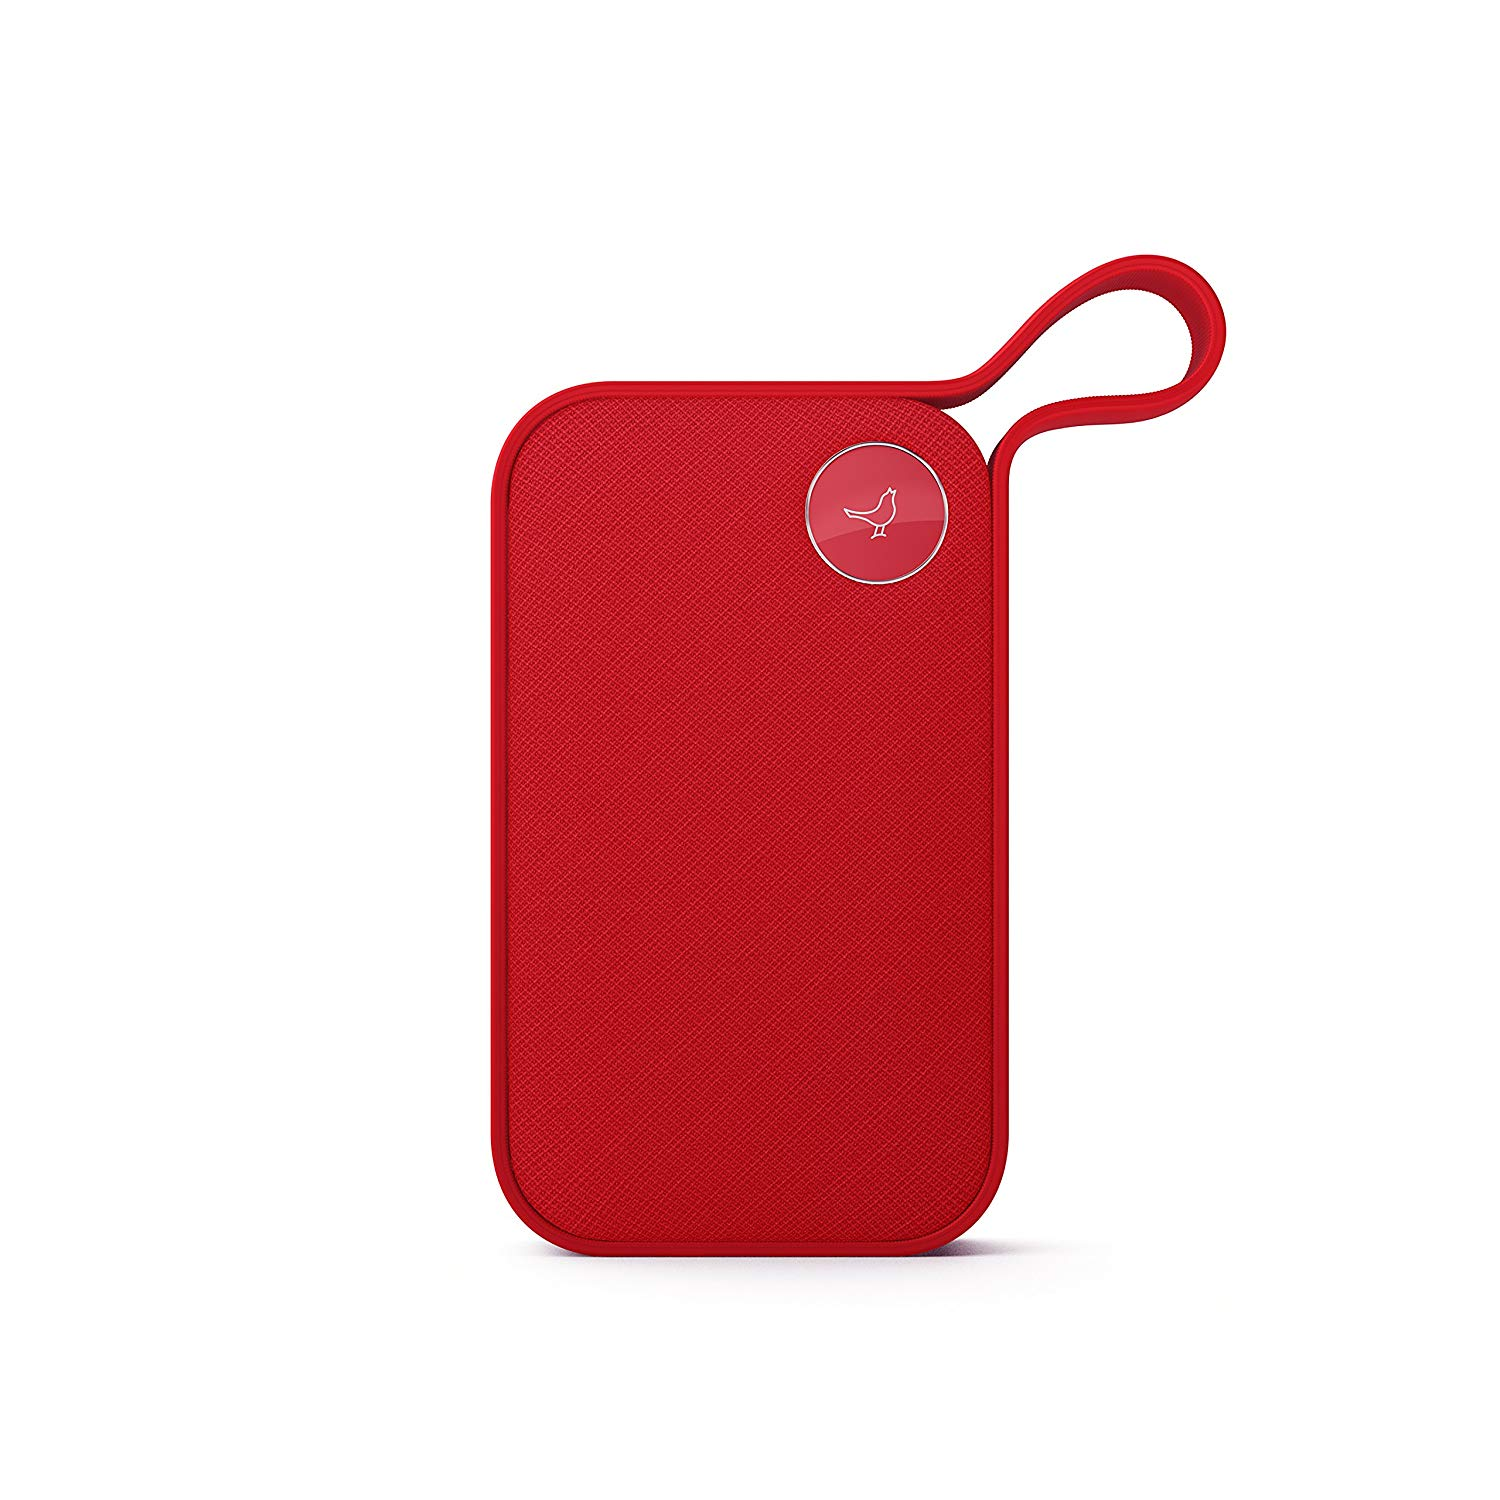 Libratone ONE Style Bluetooth Speaker (360° Sound, Touch Operation, IPX4 Splashproof, 12h Rechargeable Battery) - Cerise Red